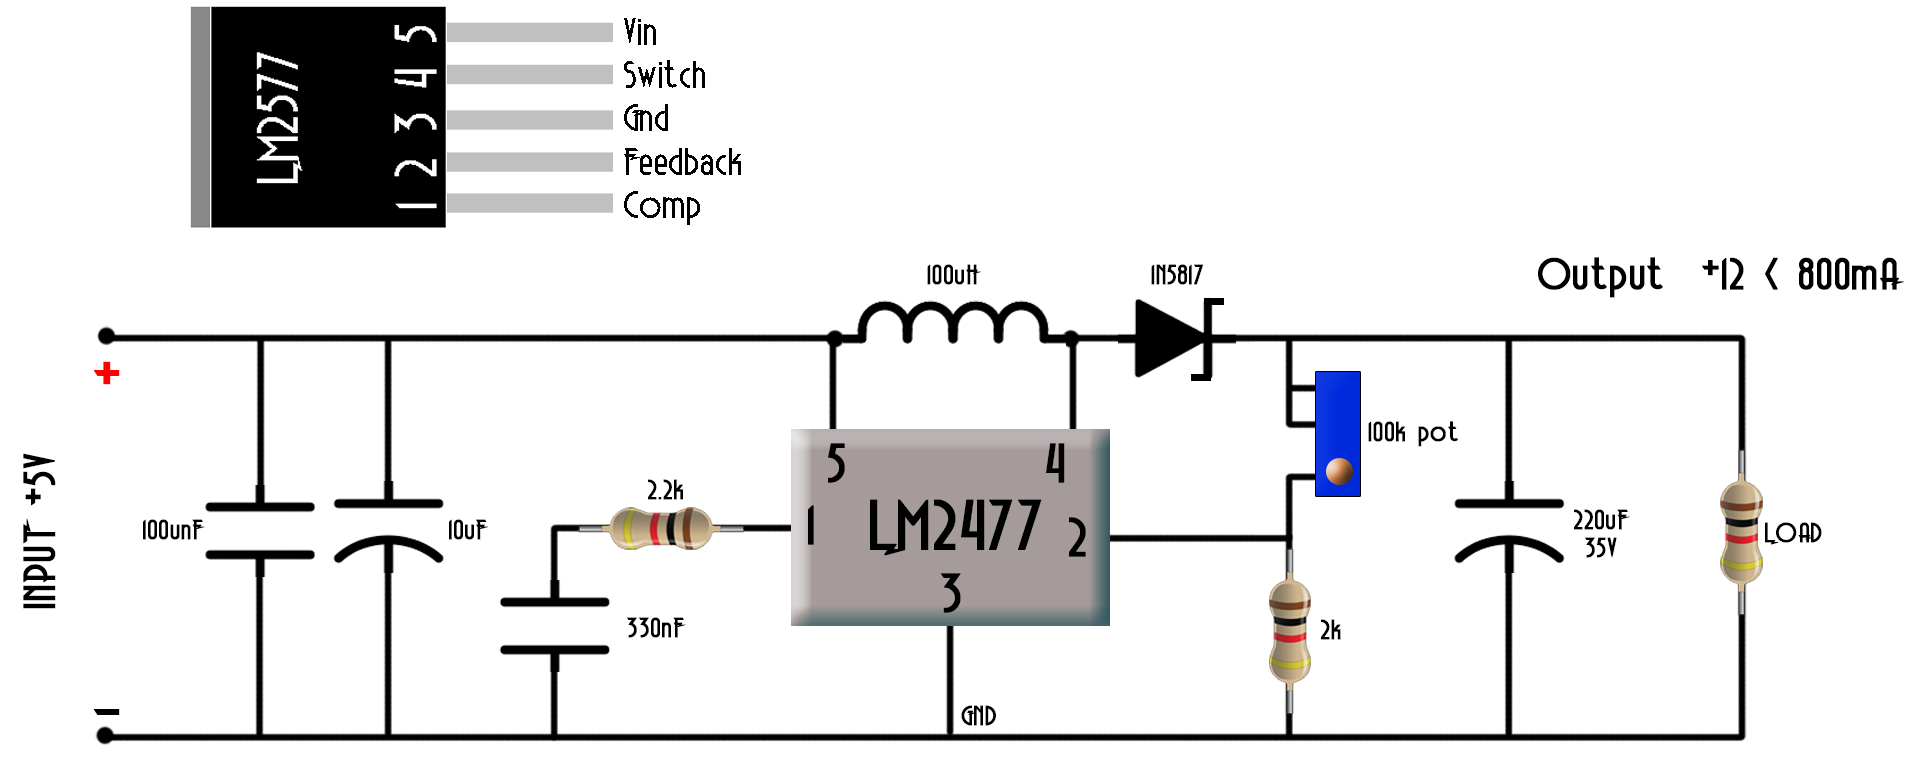 Dc To Boost Converter Circuit Homemade Diode Wiring Diagram Get Free Image About The Input Could Up 12 Volts Dont Apply Higher Voltage Or You Burn Lm2577 Adj Component In This Case We Need No External Switch Since